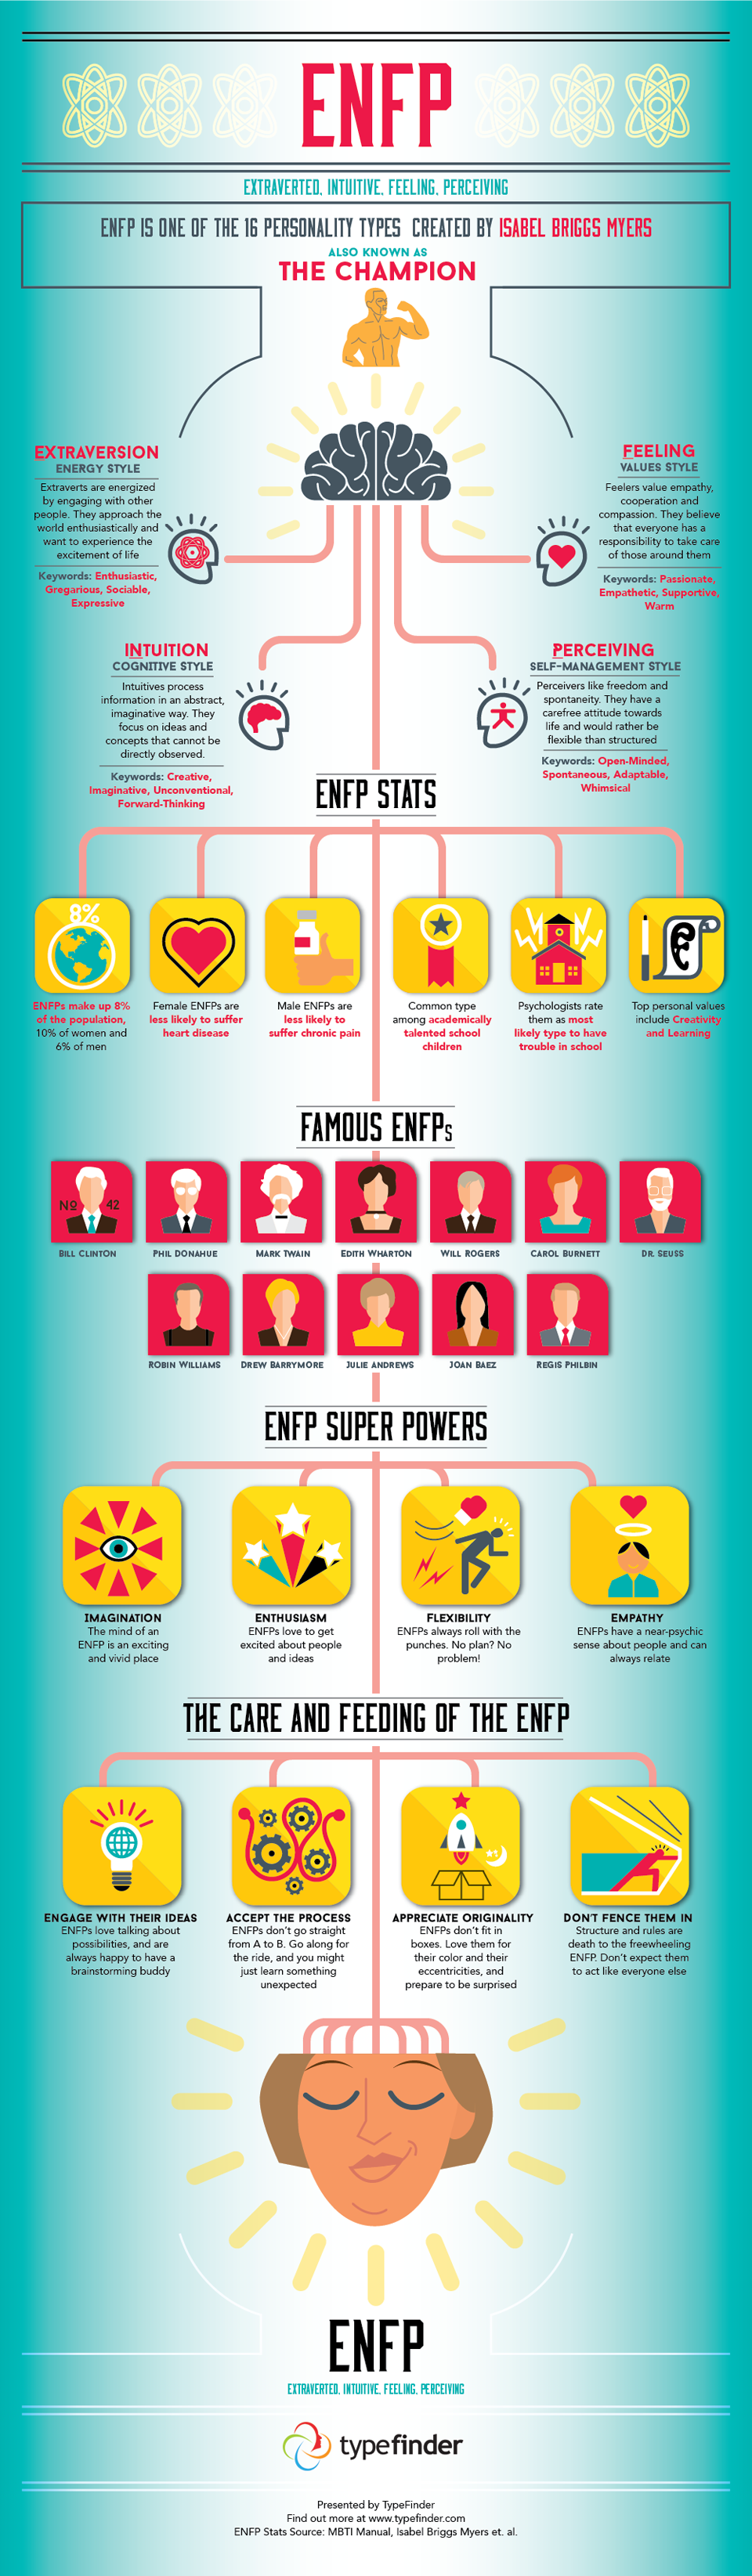 ENFP Infographic